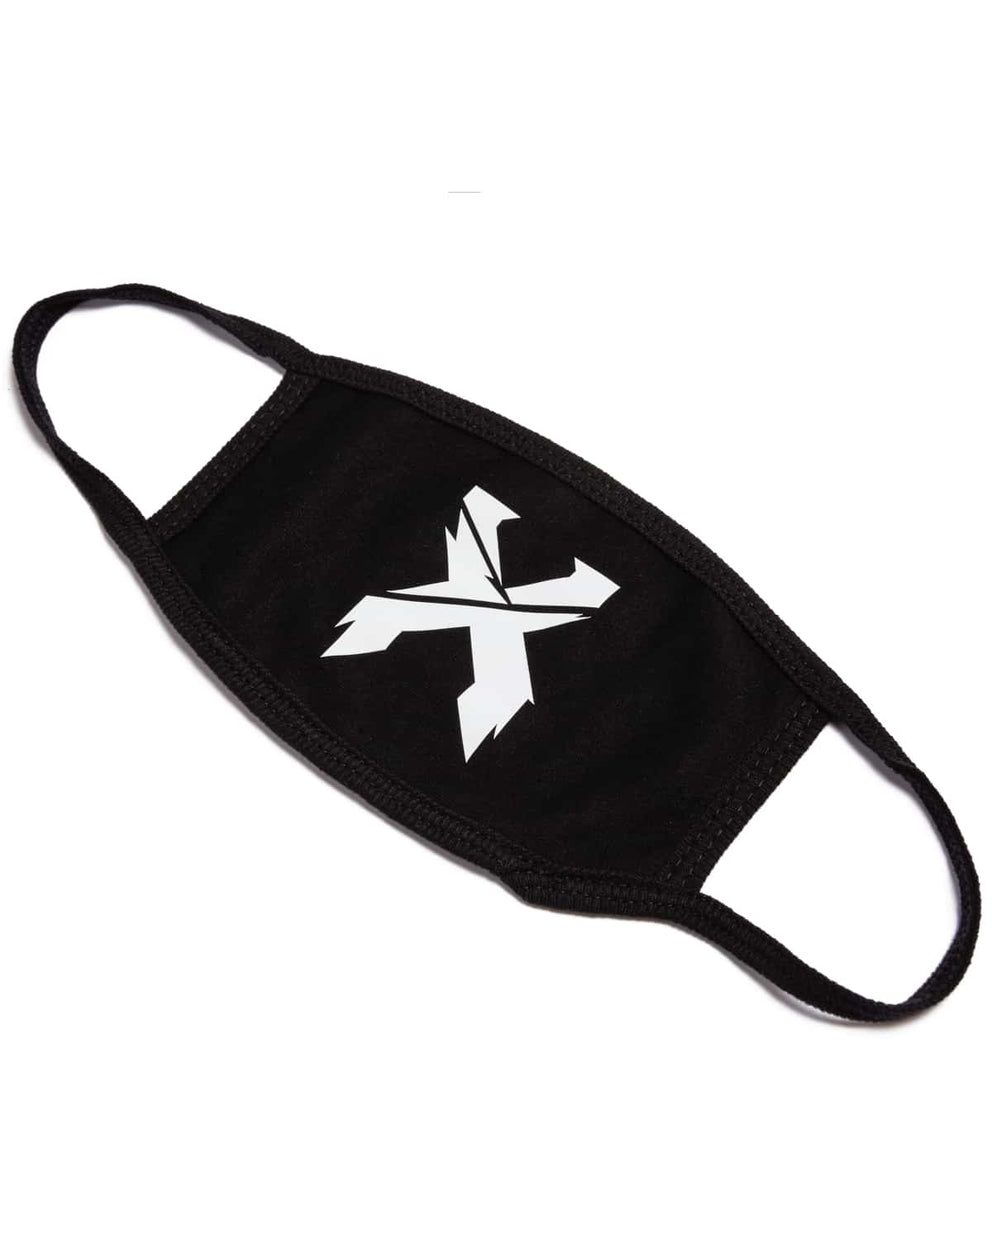 Excision 'Sliced' Logo Mouth Mask - Black